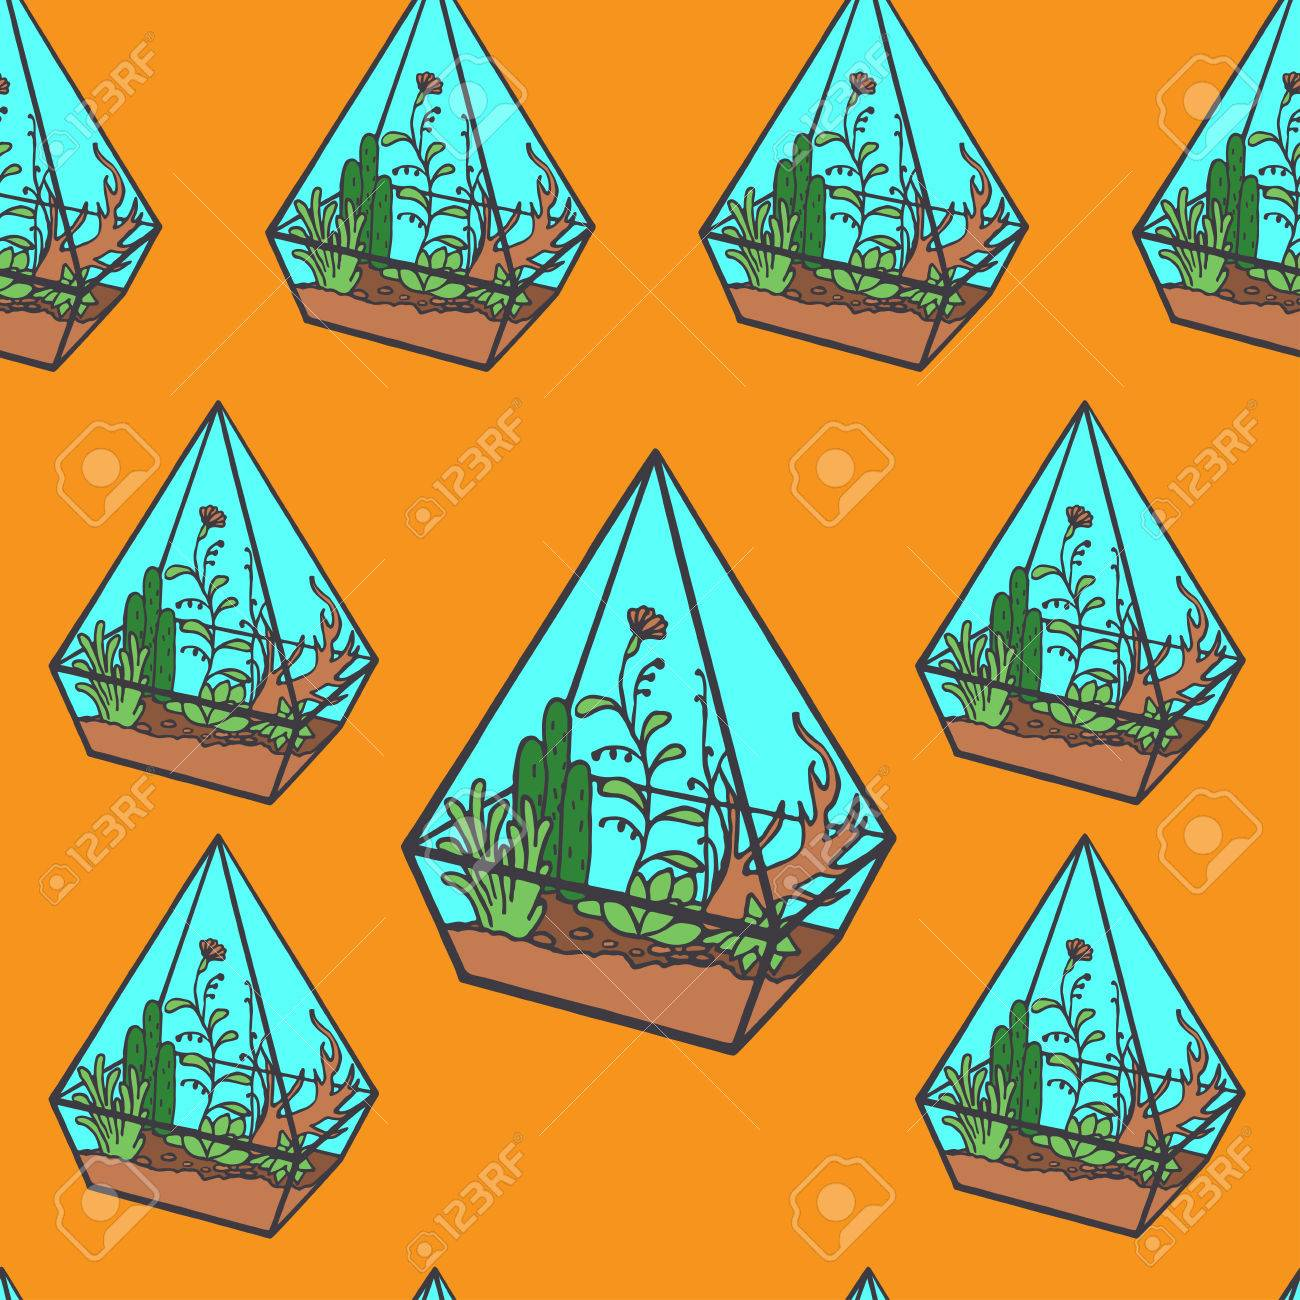 Vector Glass Polygonal Terrarium With Succulent Plants Grass Stock Photo Picture And Royalty Free Image Image 48290711